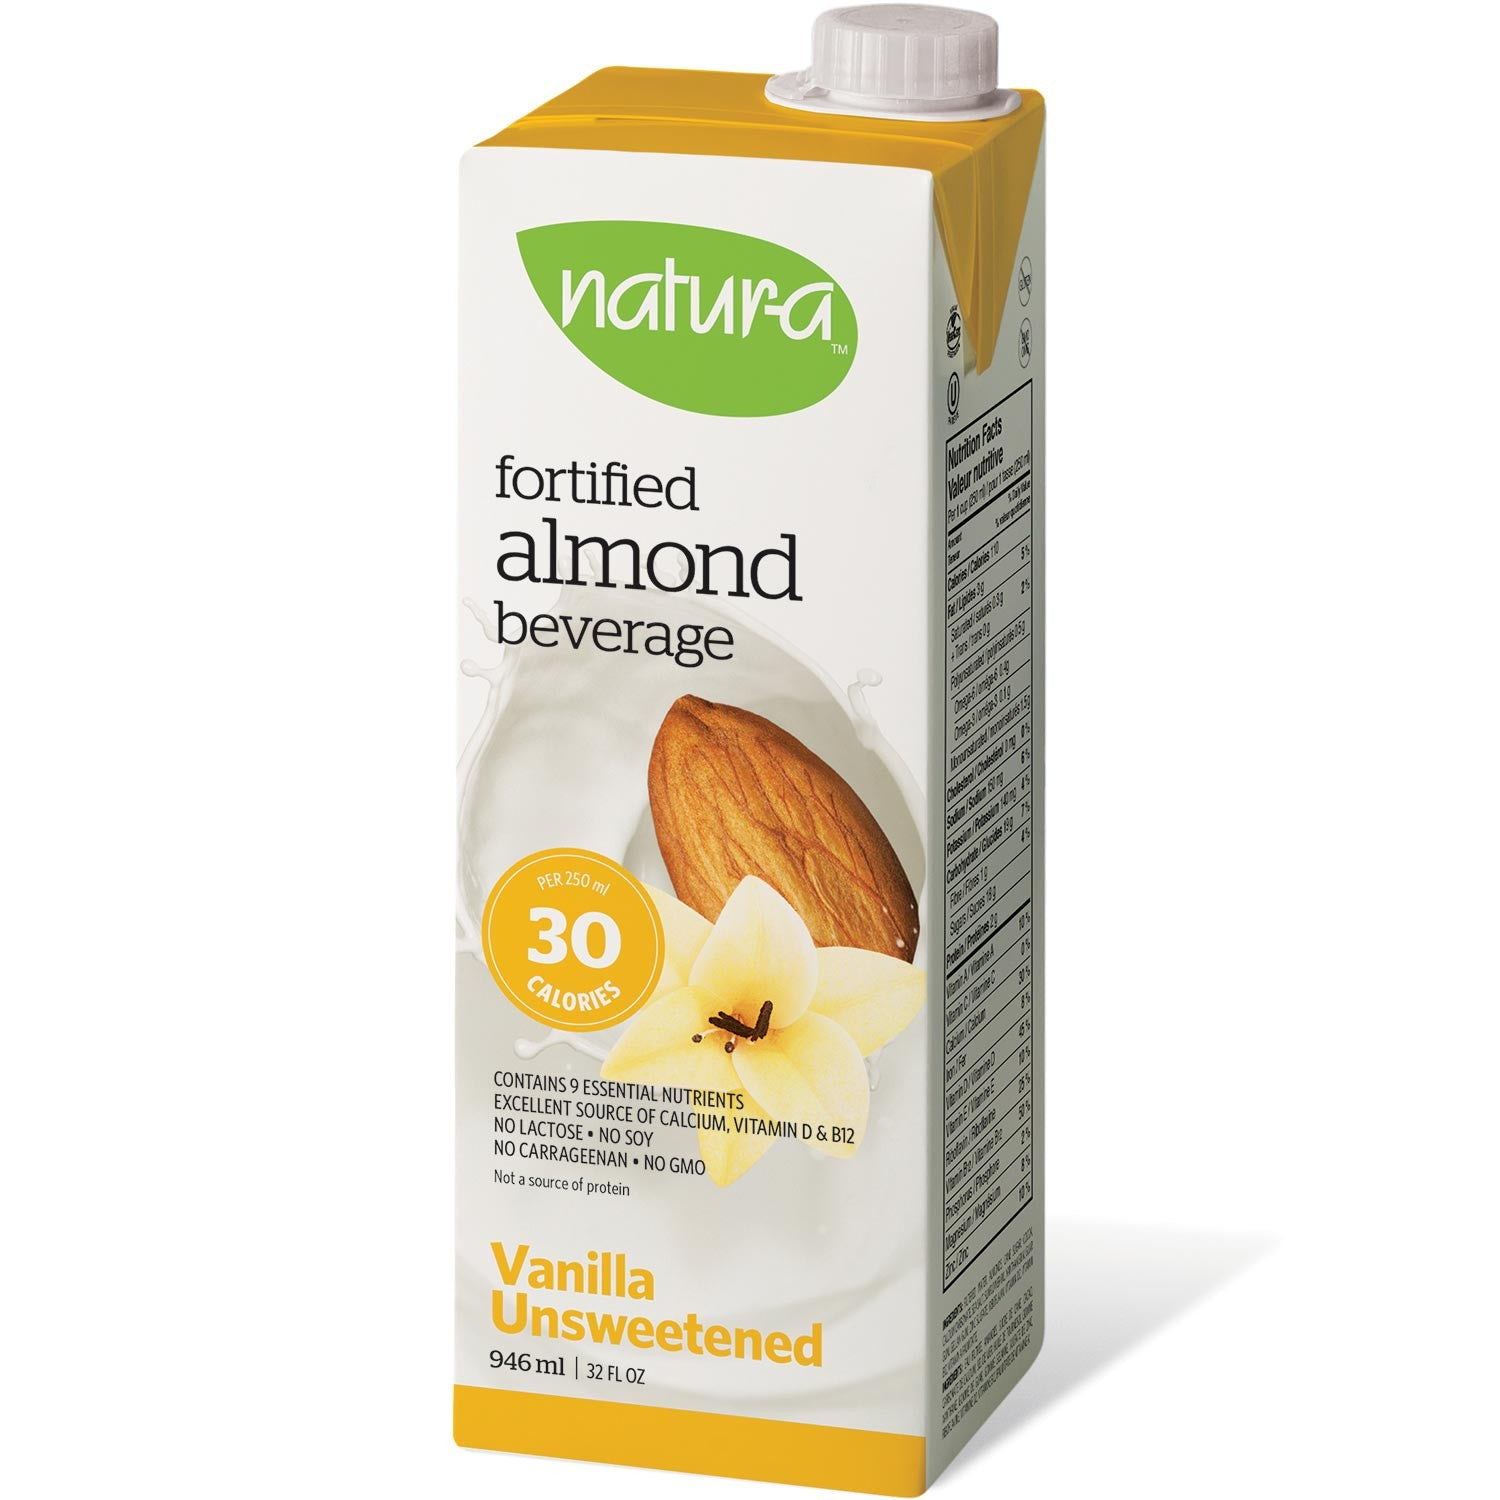 Natur-a Enriched Almond Beverage - Vanilla Unsweetened, 946 ml.-NaturesWisdom